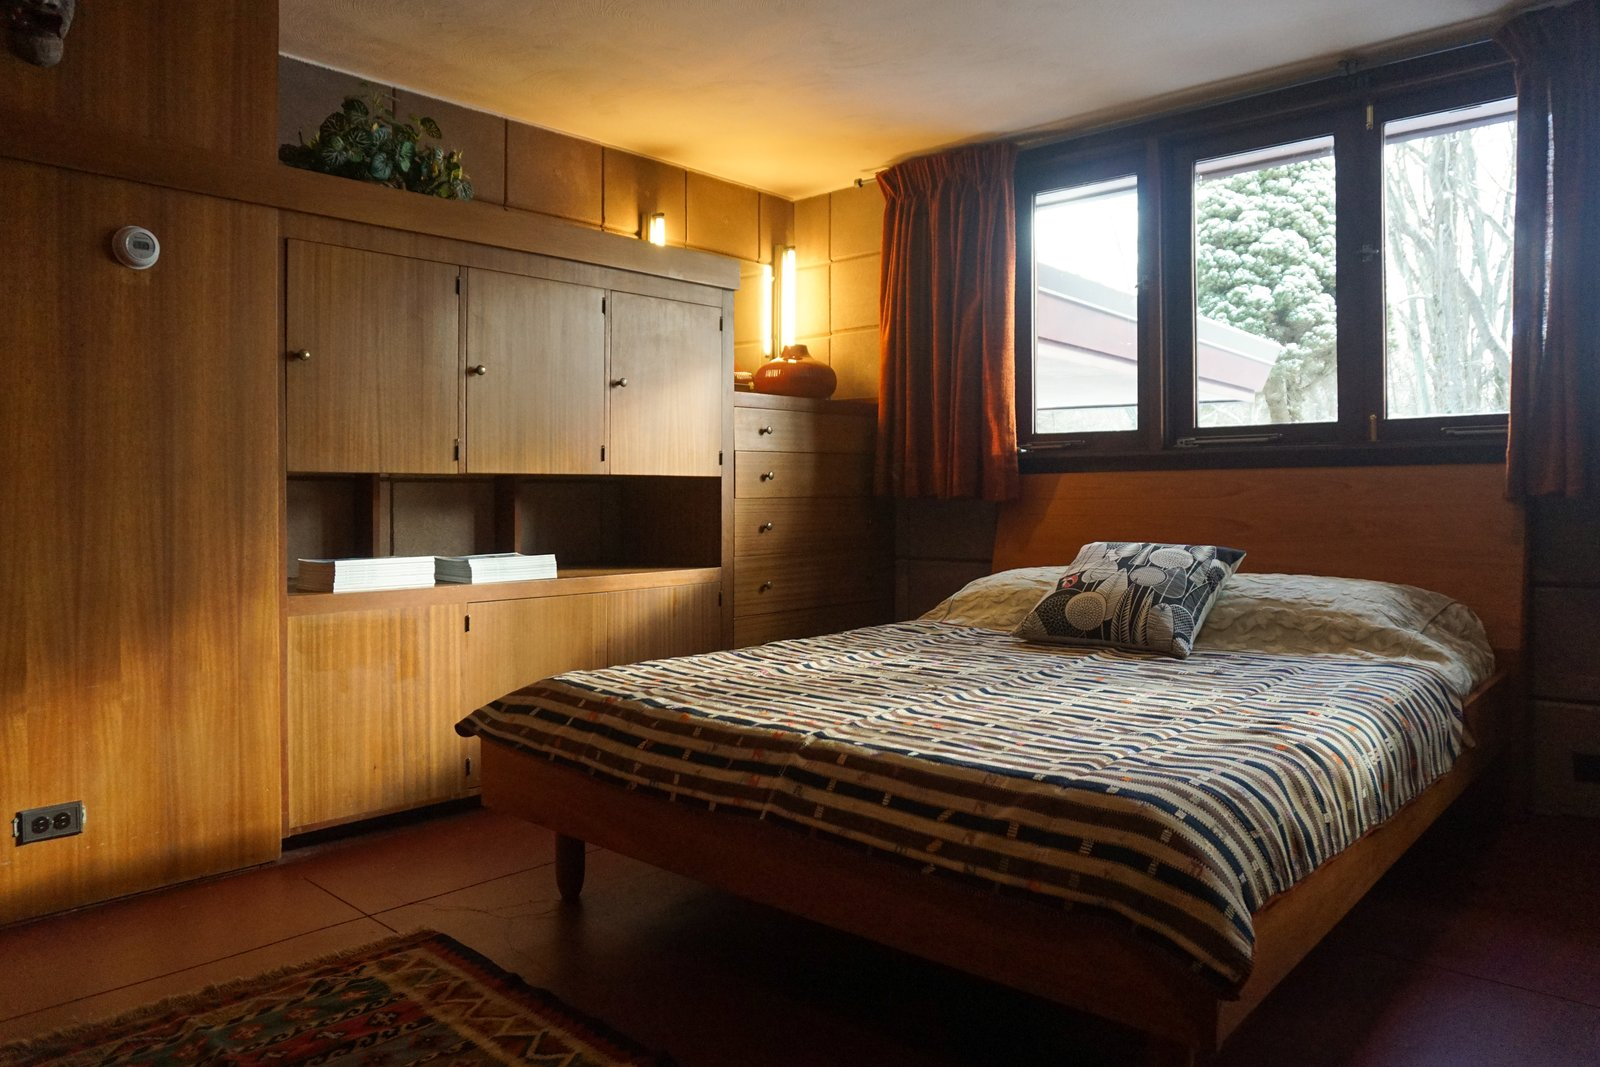 Bedroom, Bed, Concrete Floor, Storage, Dresser, Rug Floor, and Wall Lighting Built-in millwork provides ample storage in the bedroom spaces.  Danish teak beds with mid-century textiles resemble the original furnishings.  Frank Lloyd Wright's Eppstein House from You Can Now Rent Frank Lloyd Wright's Gloriously Restored Eppstein House